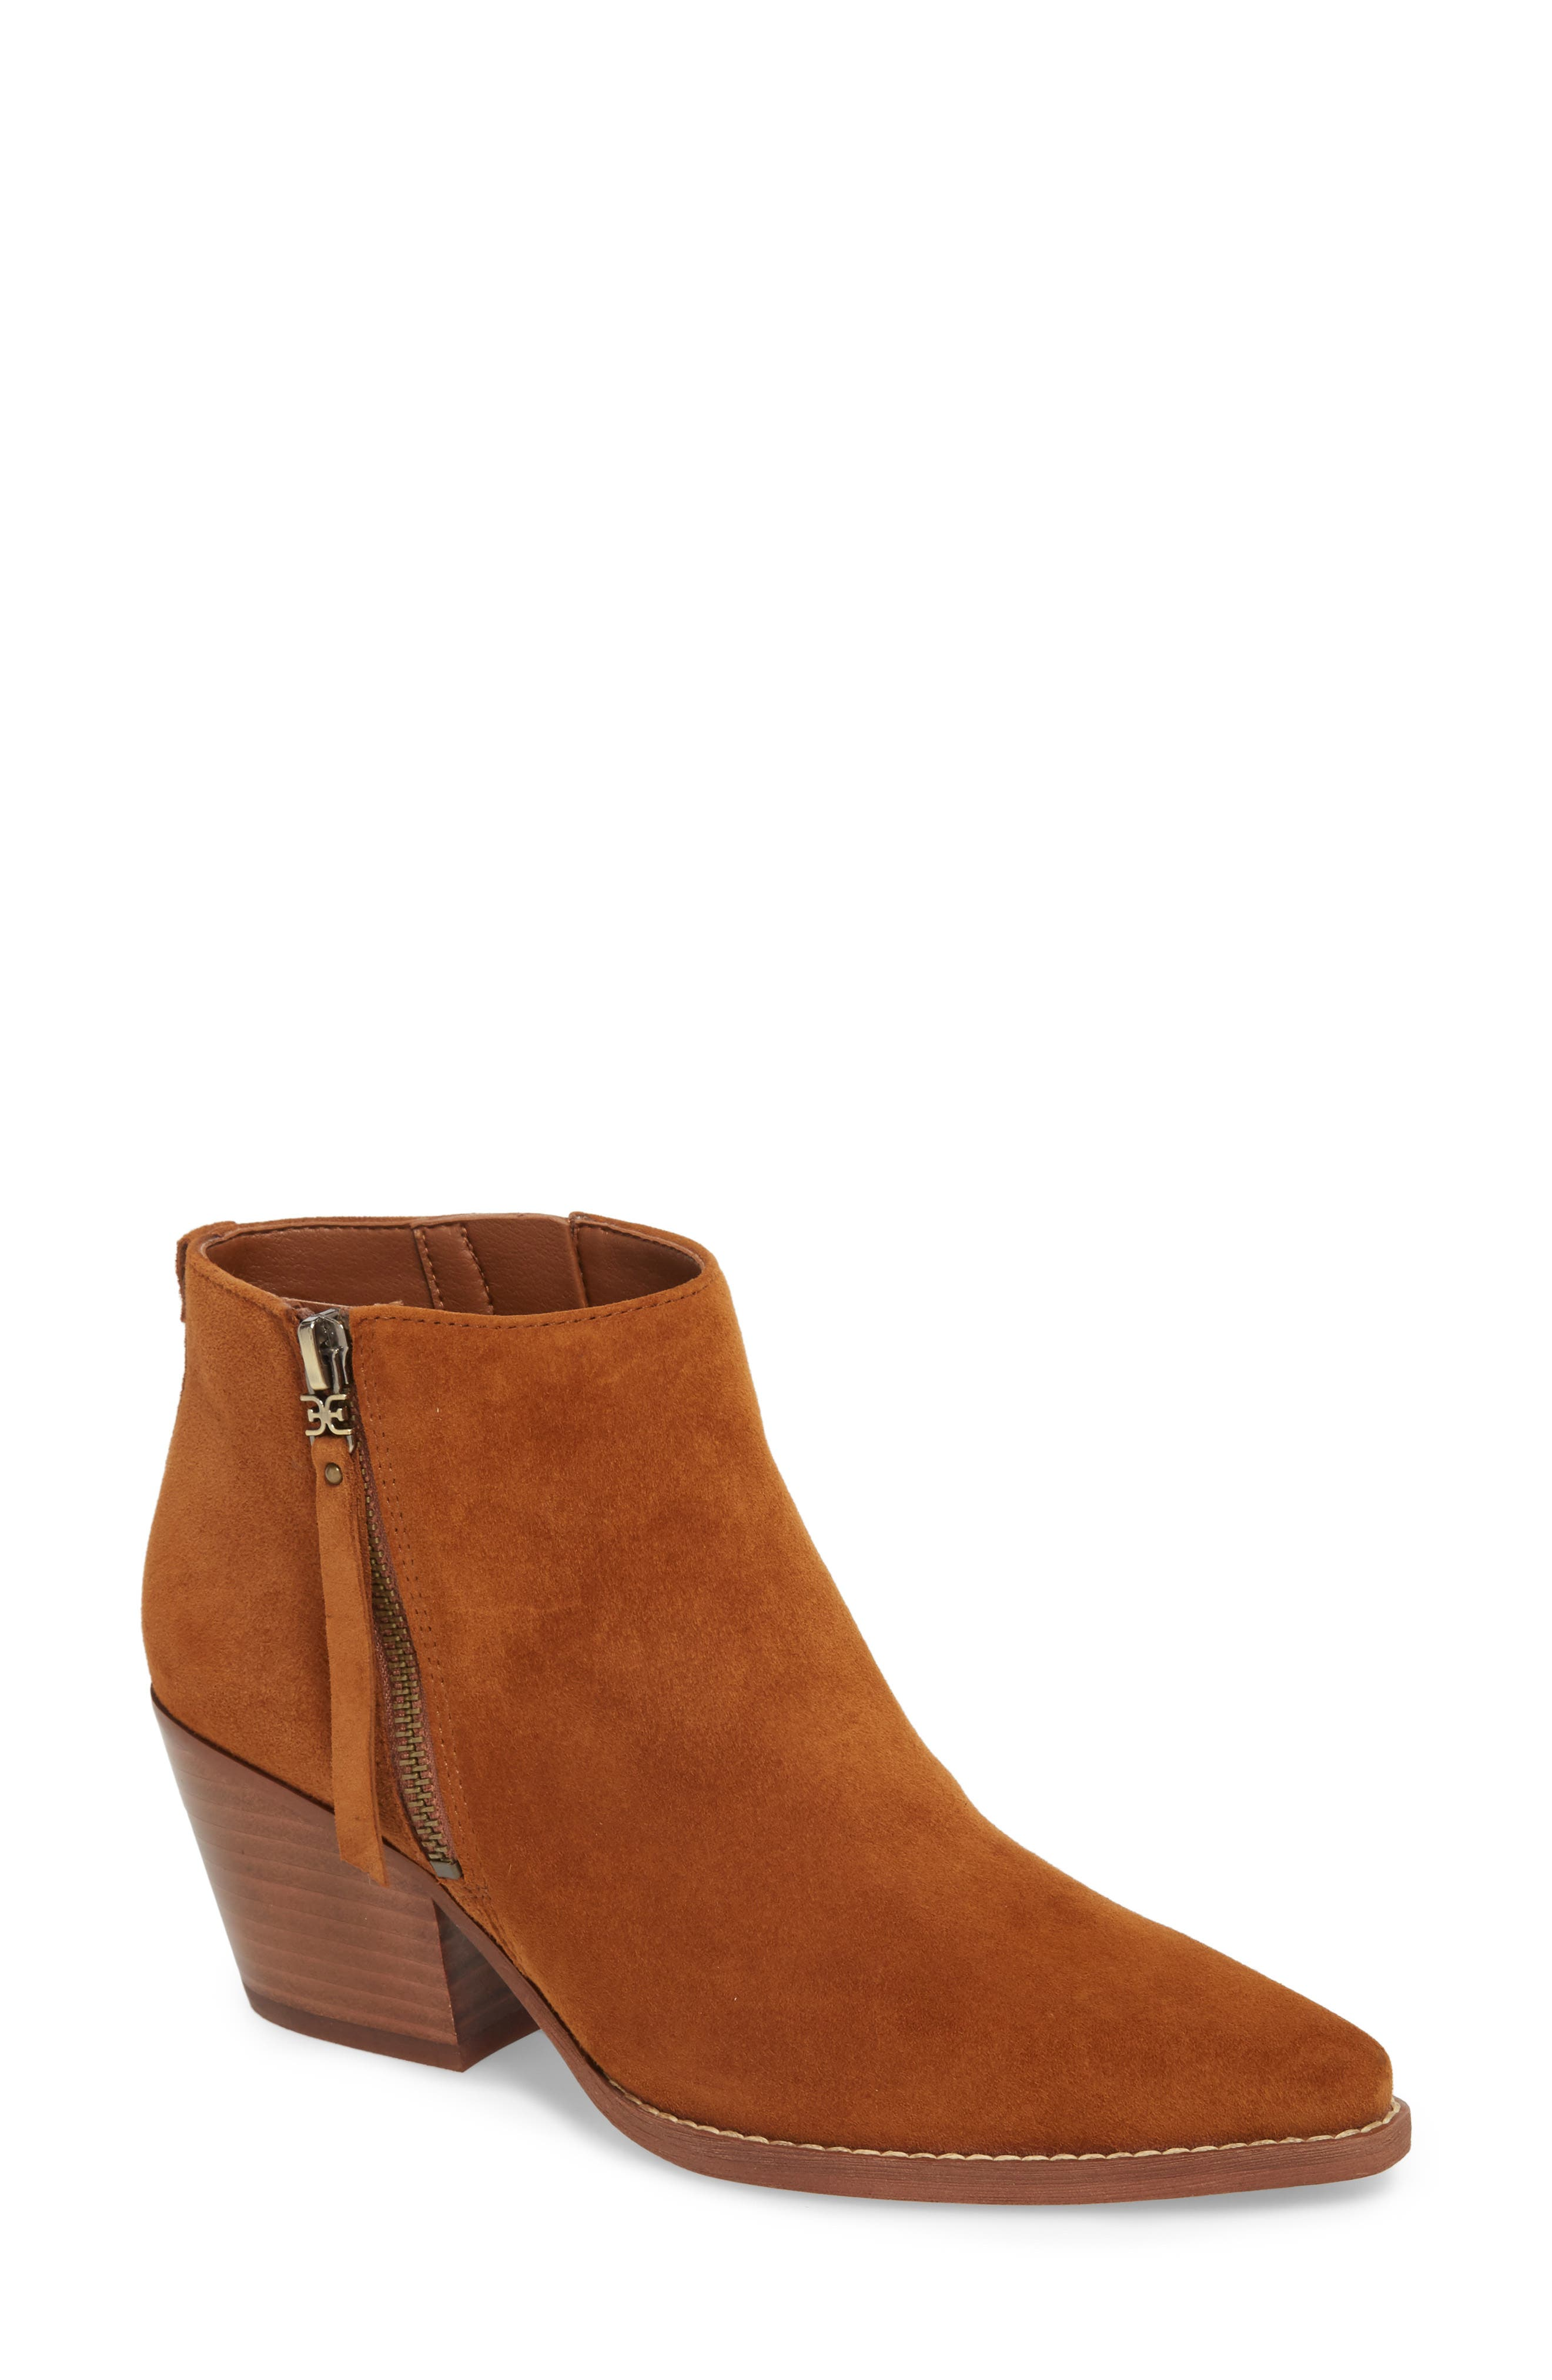 Sam Edelman Walden Bootie, Brown